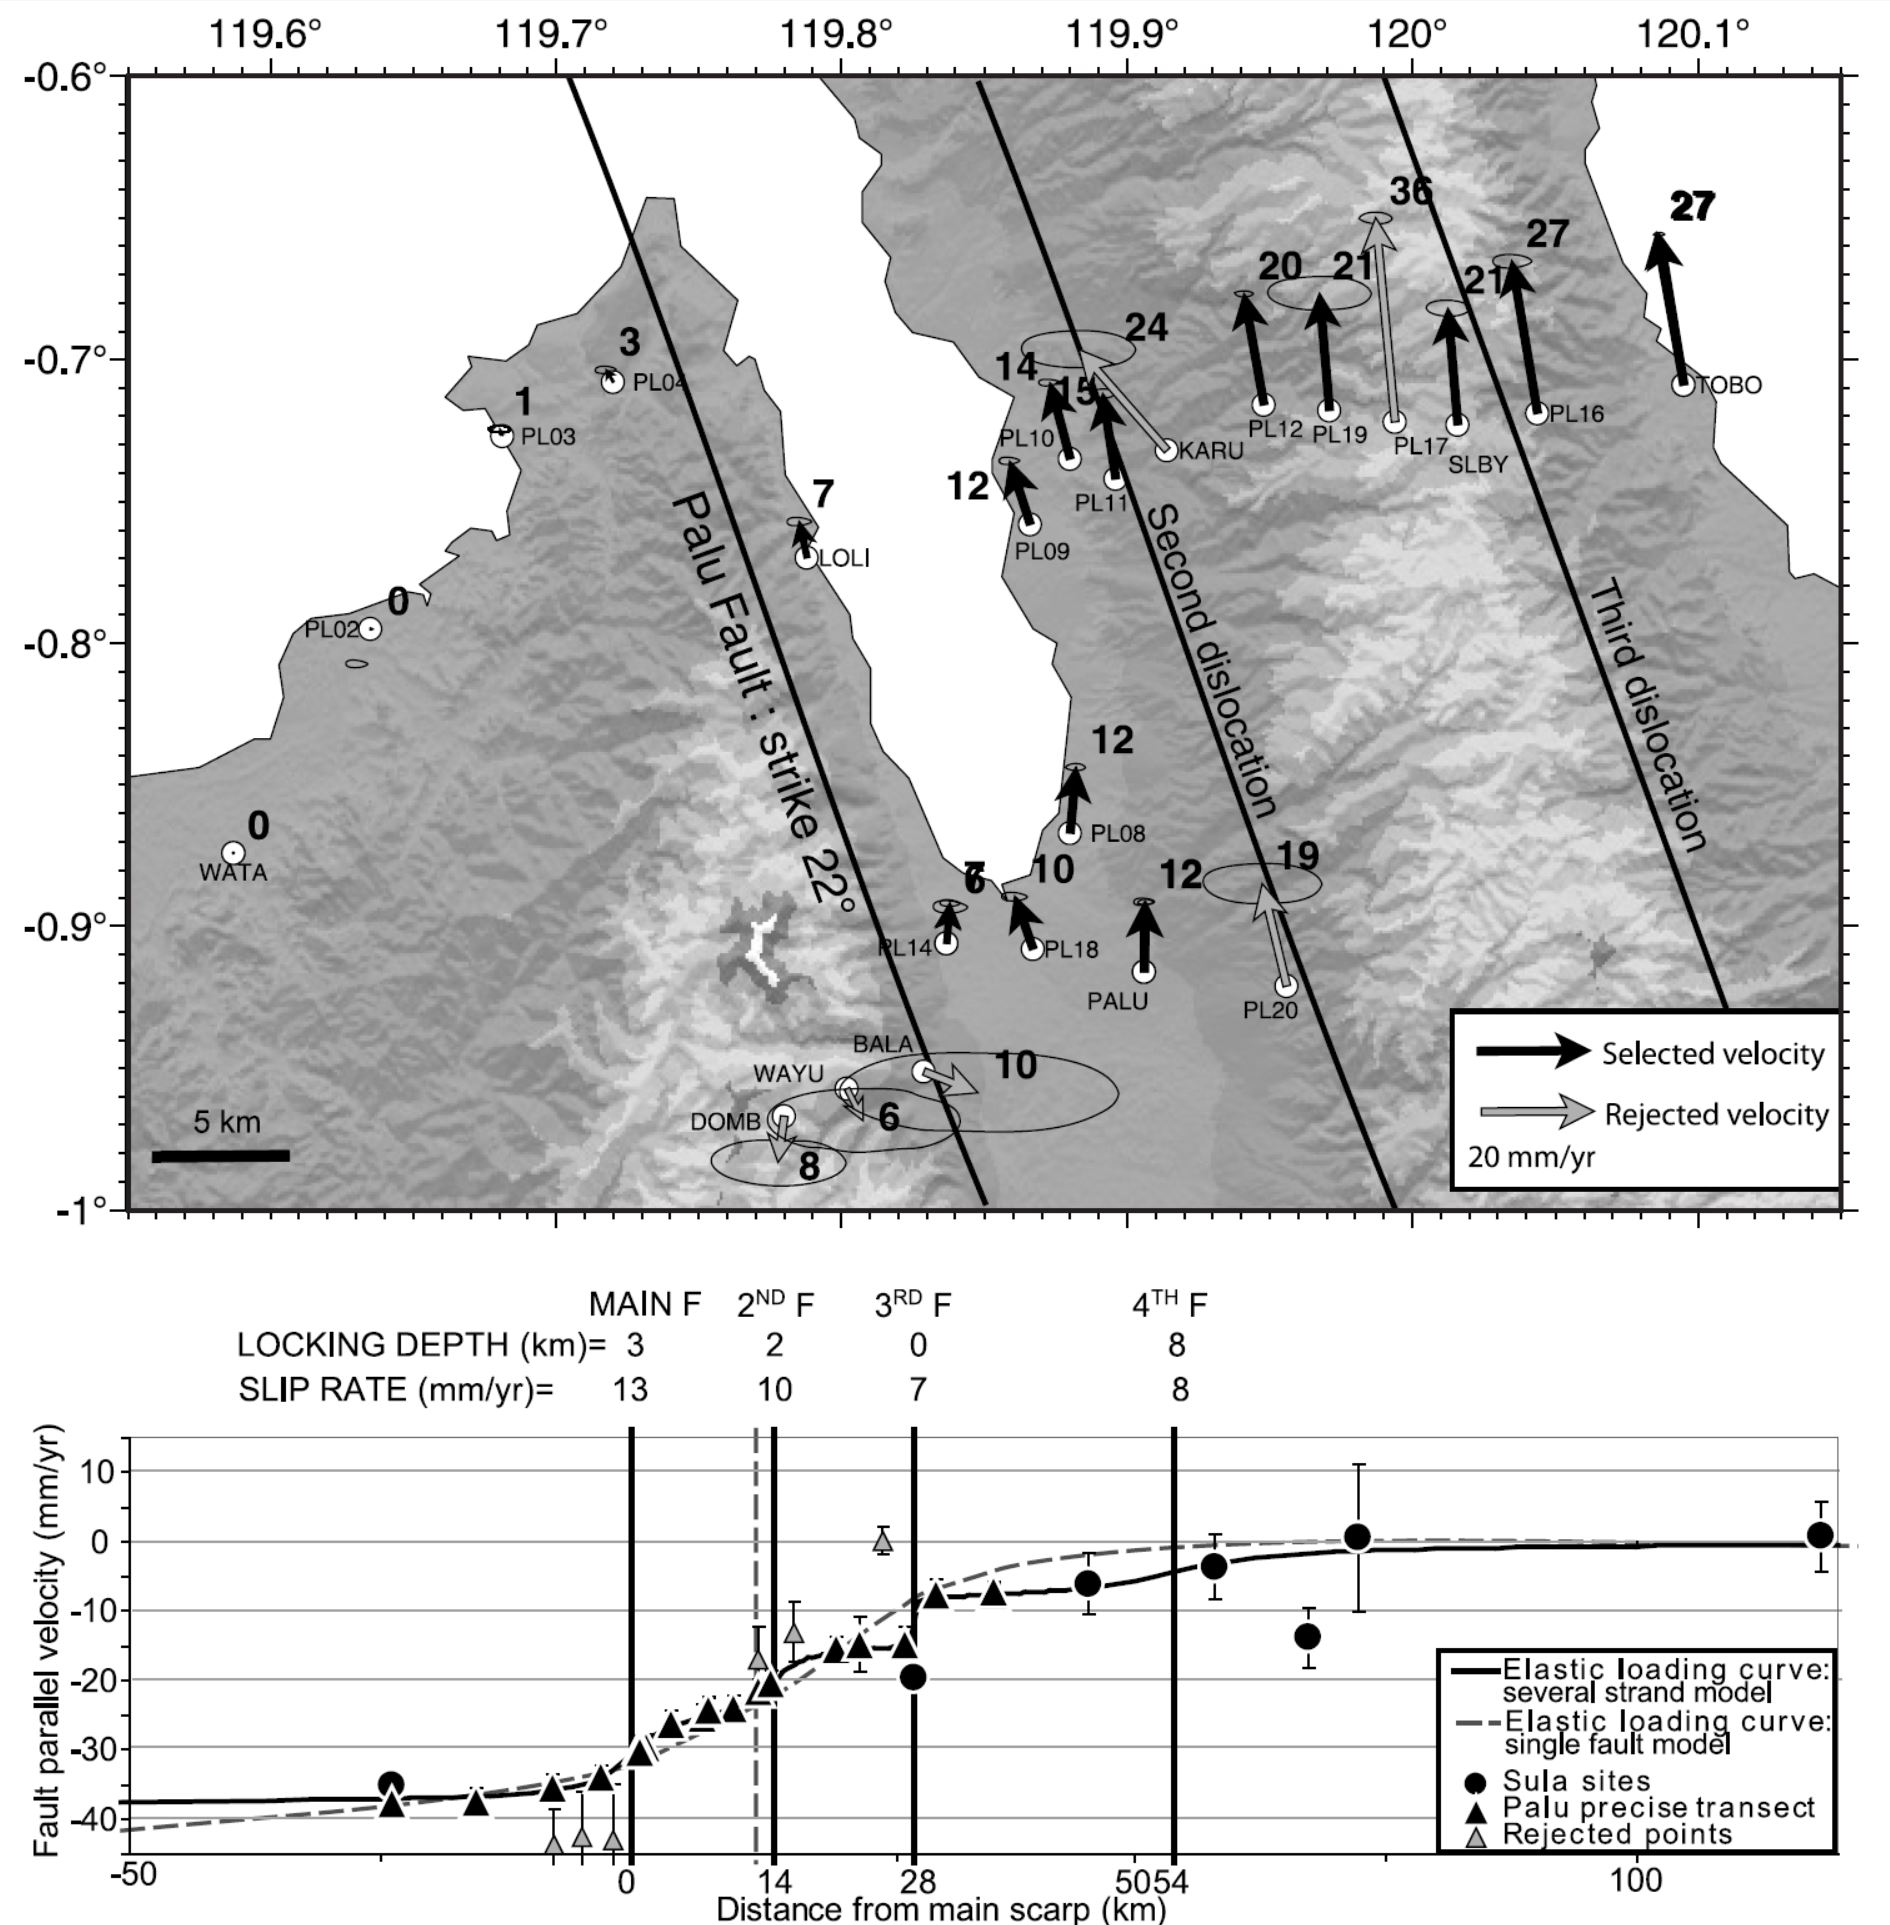 hight resolution of  top gps velocities in palu area relative to station wata strm topography is used as background bottom four parallel elastic dislocations that fit best